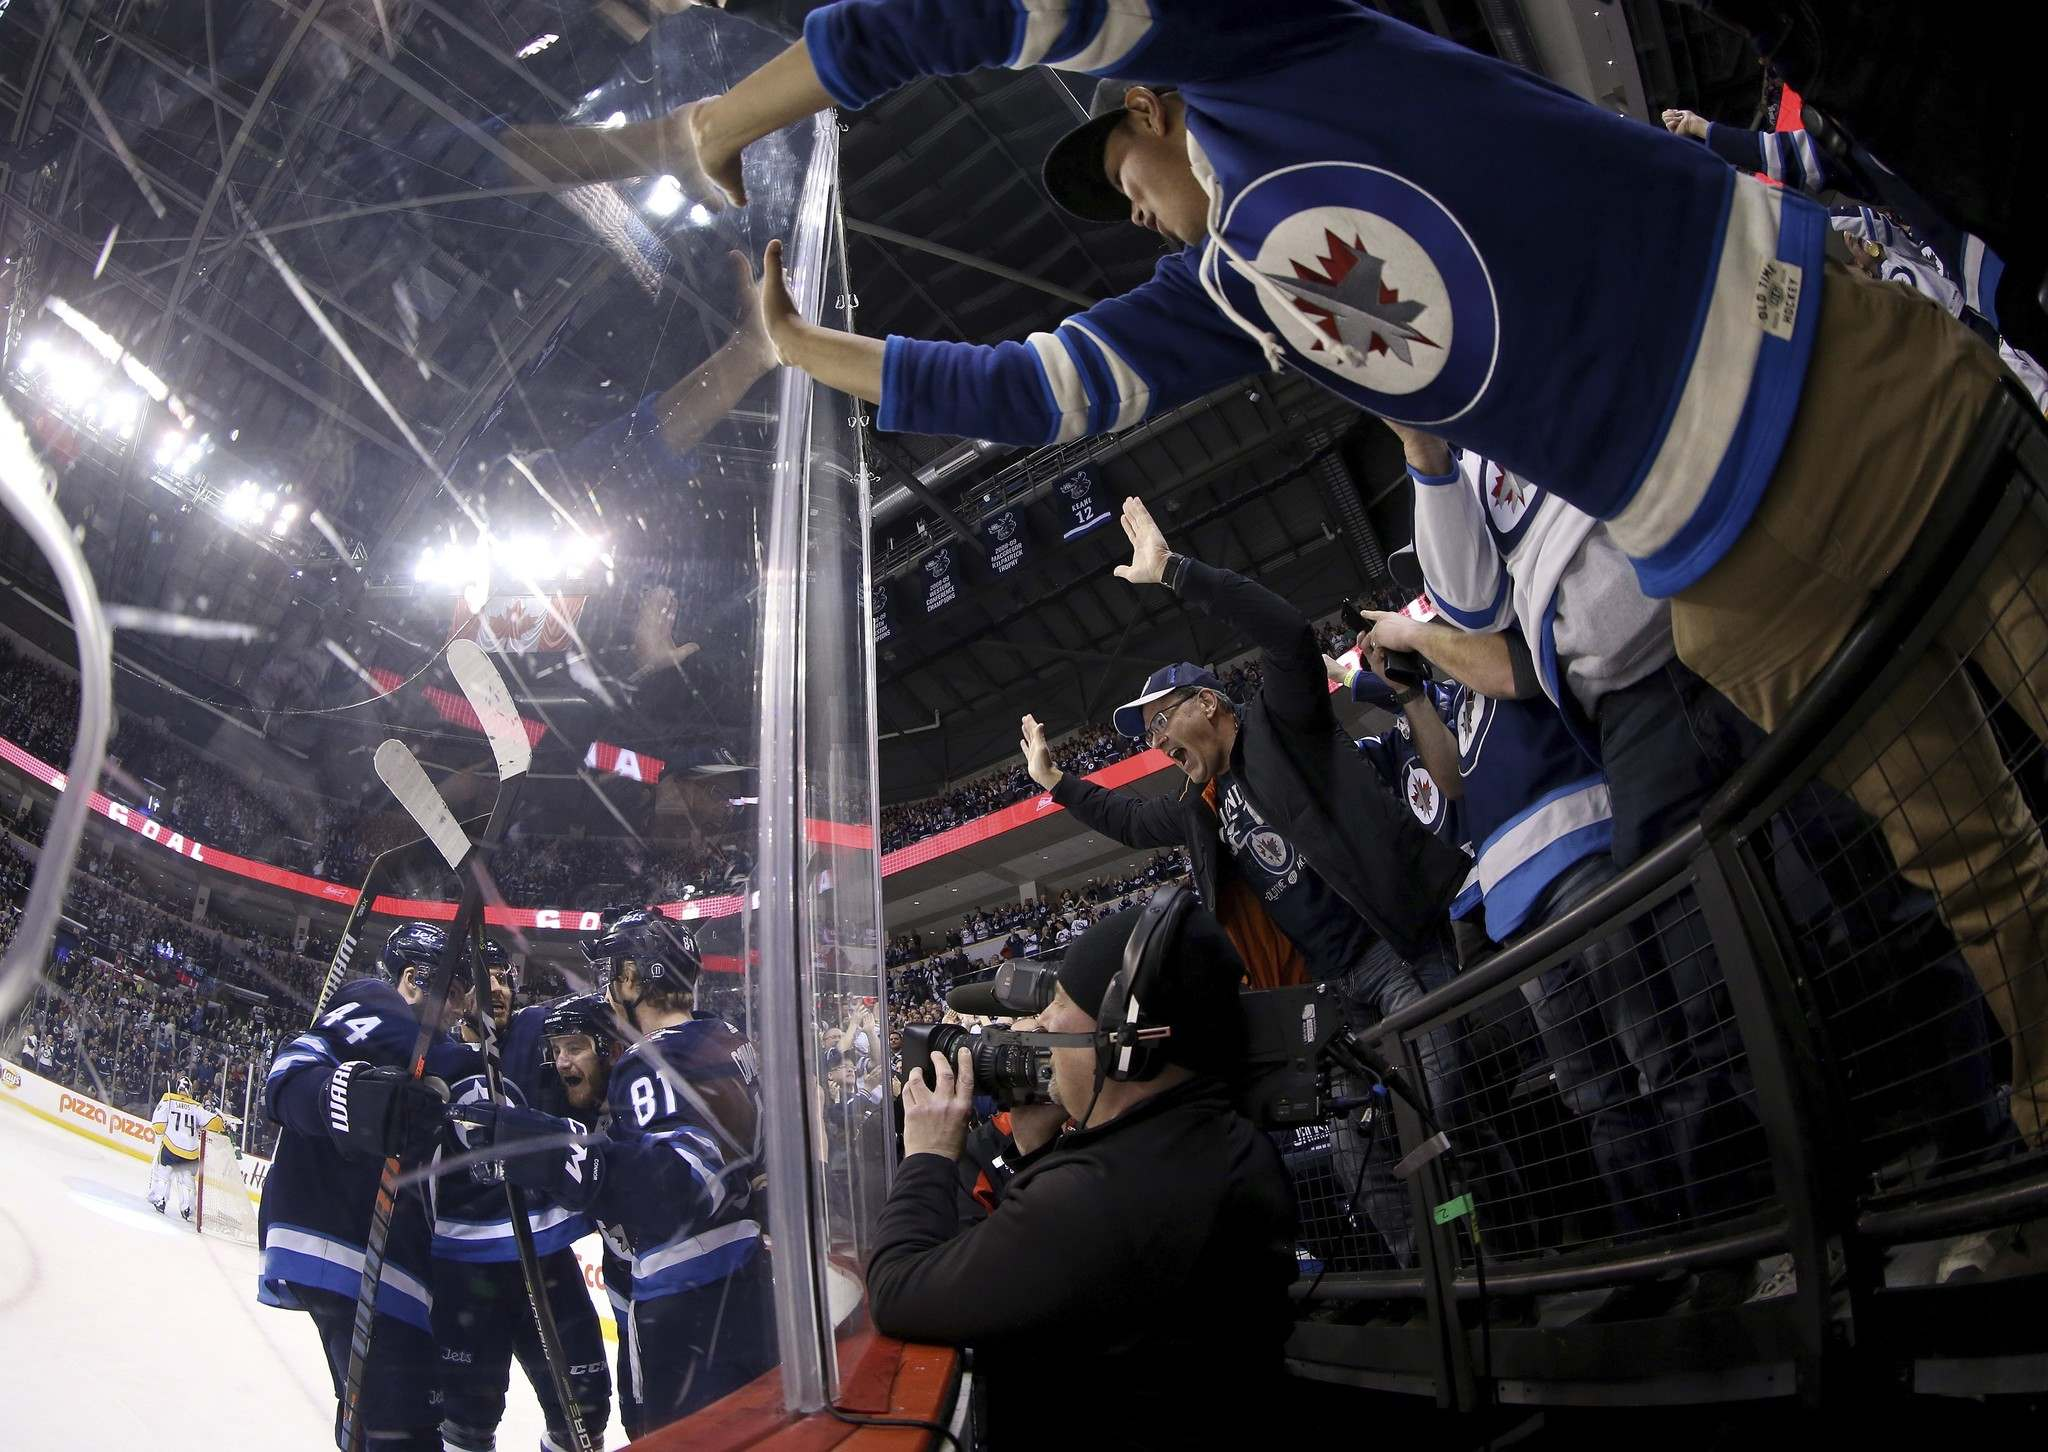 THE CANADIAN PRESS/Trevor Hagan</p><p>Winnipeg Jets&#39; celebrate a goal against the Nashville Predators as Jets&#39; fans jubilate. The expectations for the Jets have gone up this season - from hoping to make the playoffs at the start, to being serious Stanley Cup contenders by the end of the regular season.</p>